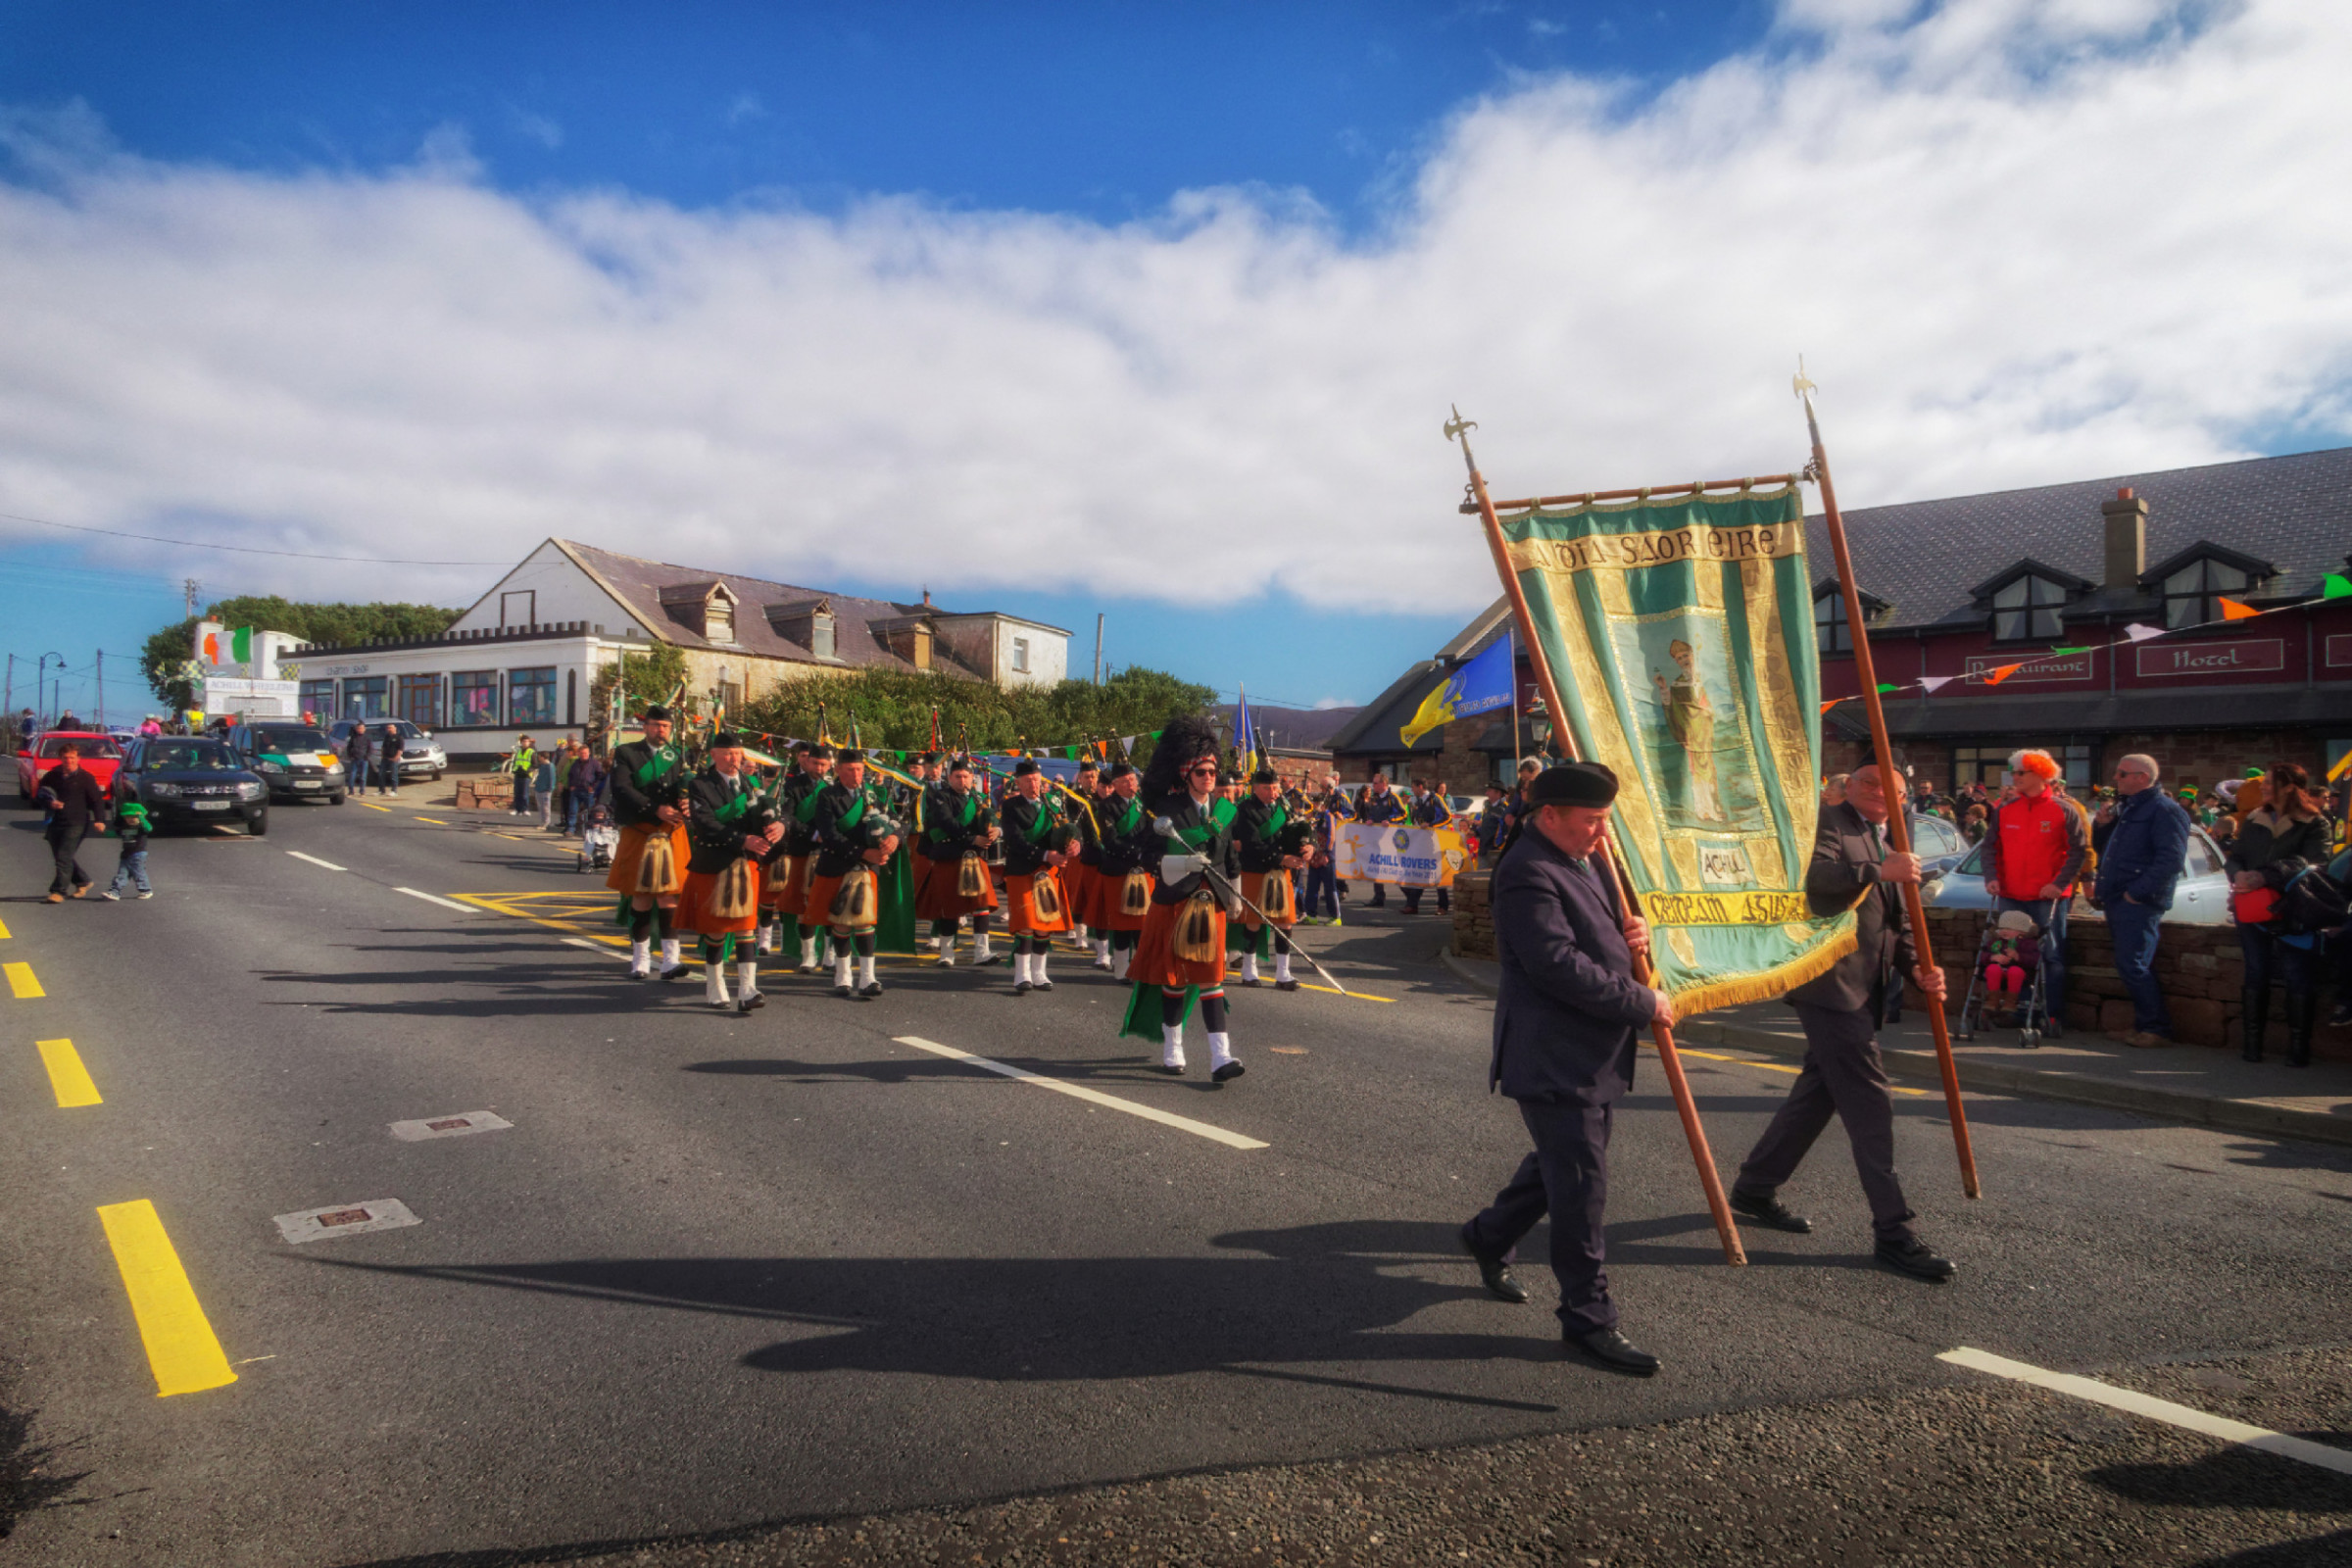 20160320125608-ie-achill-sound_parade-_DxO_13in_DxO96